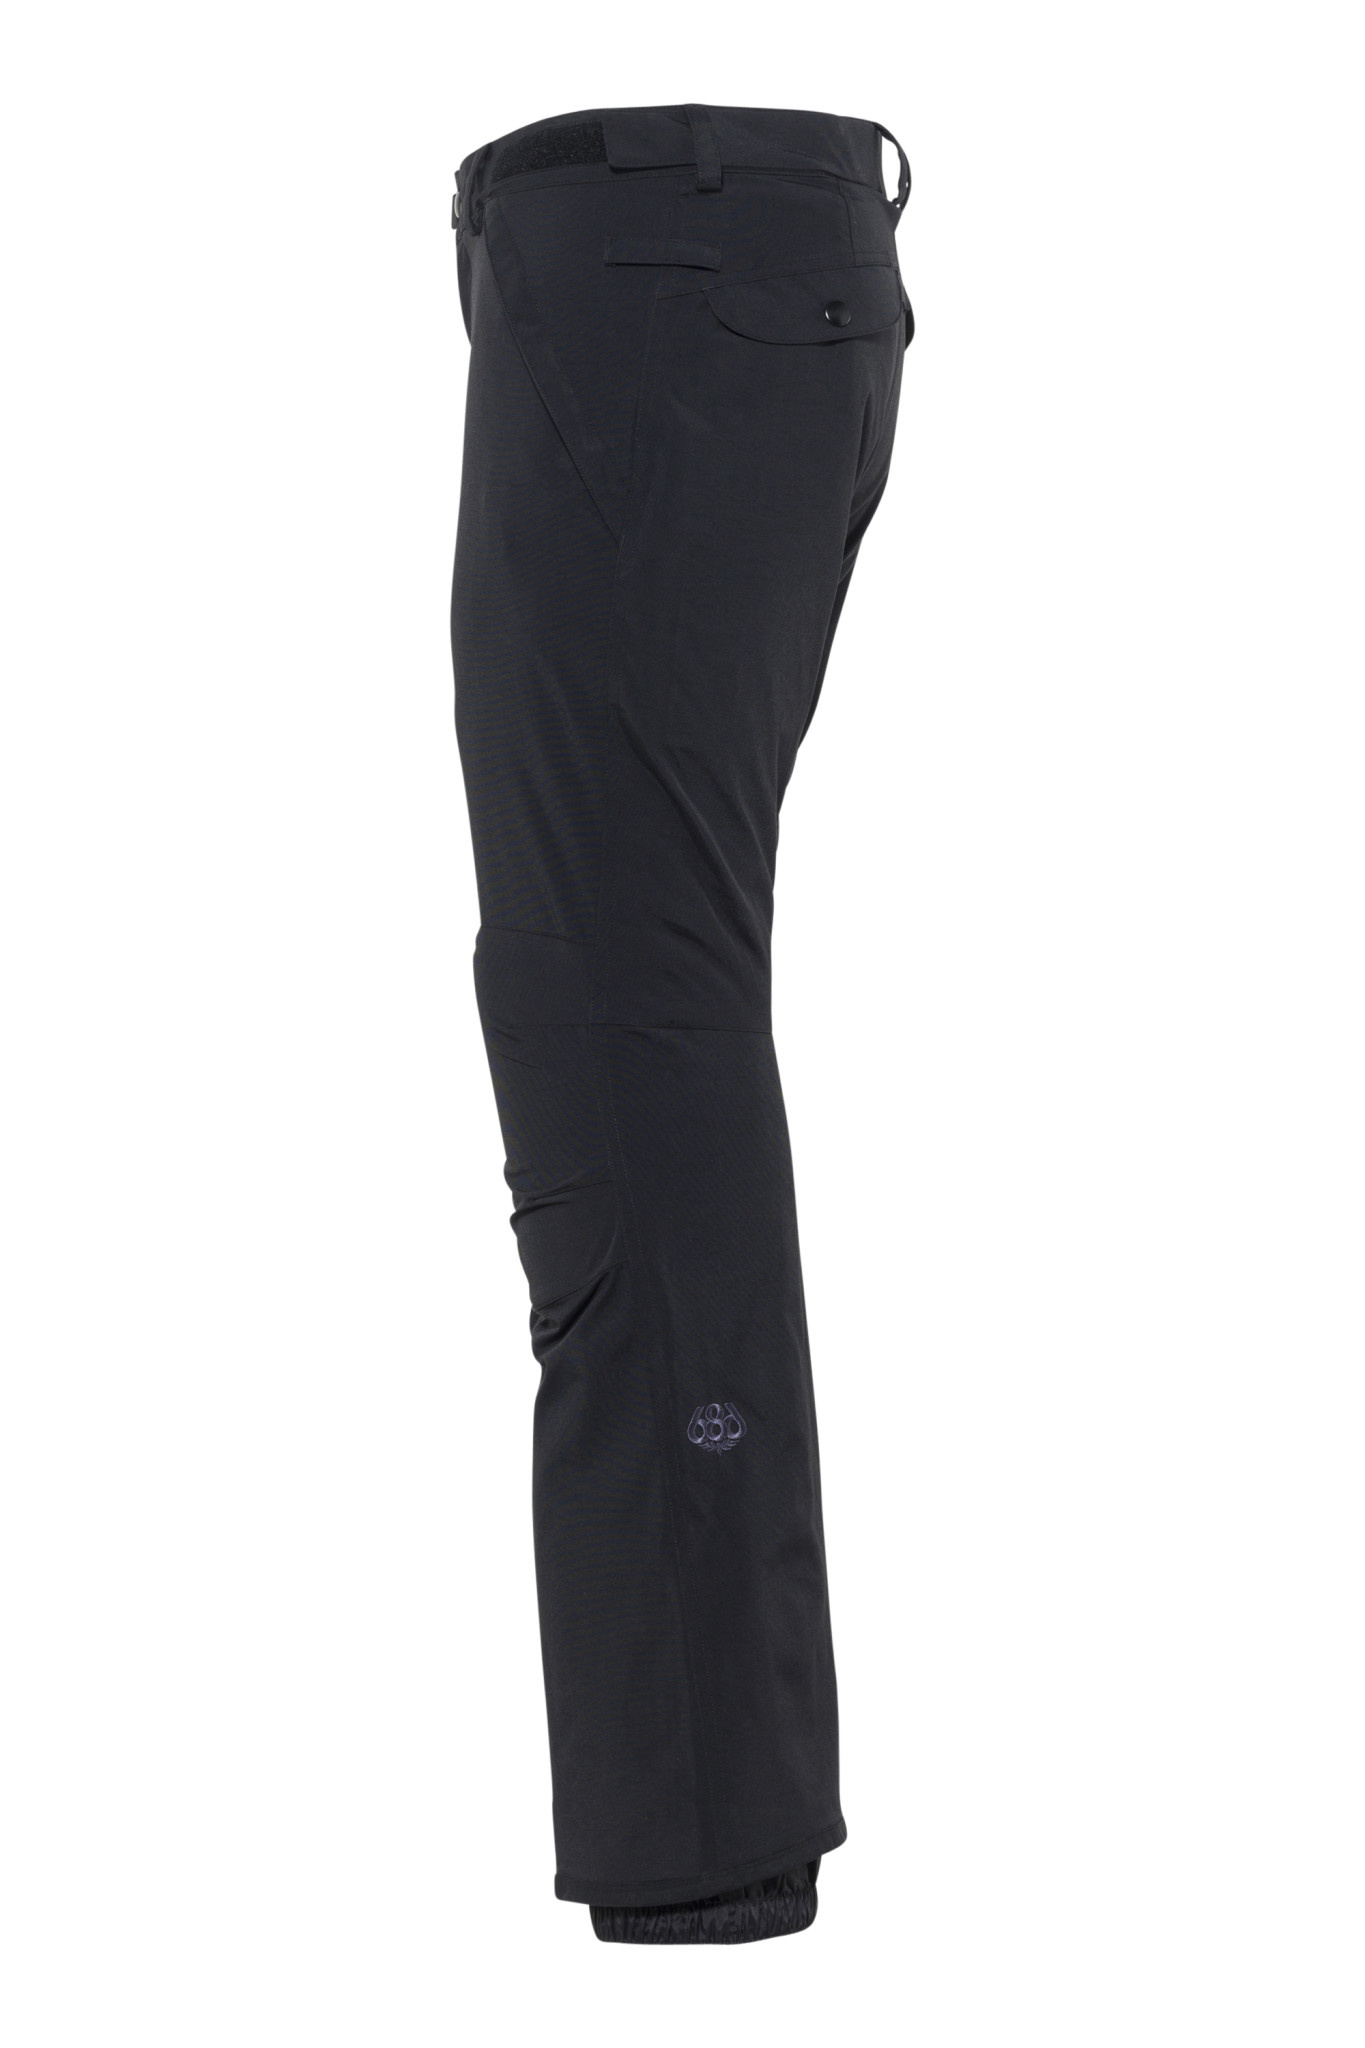 686 686 Women's Progression Padded Pant